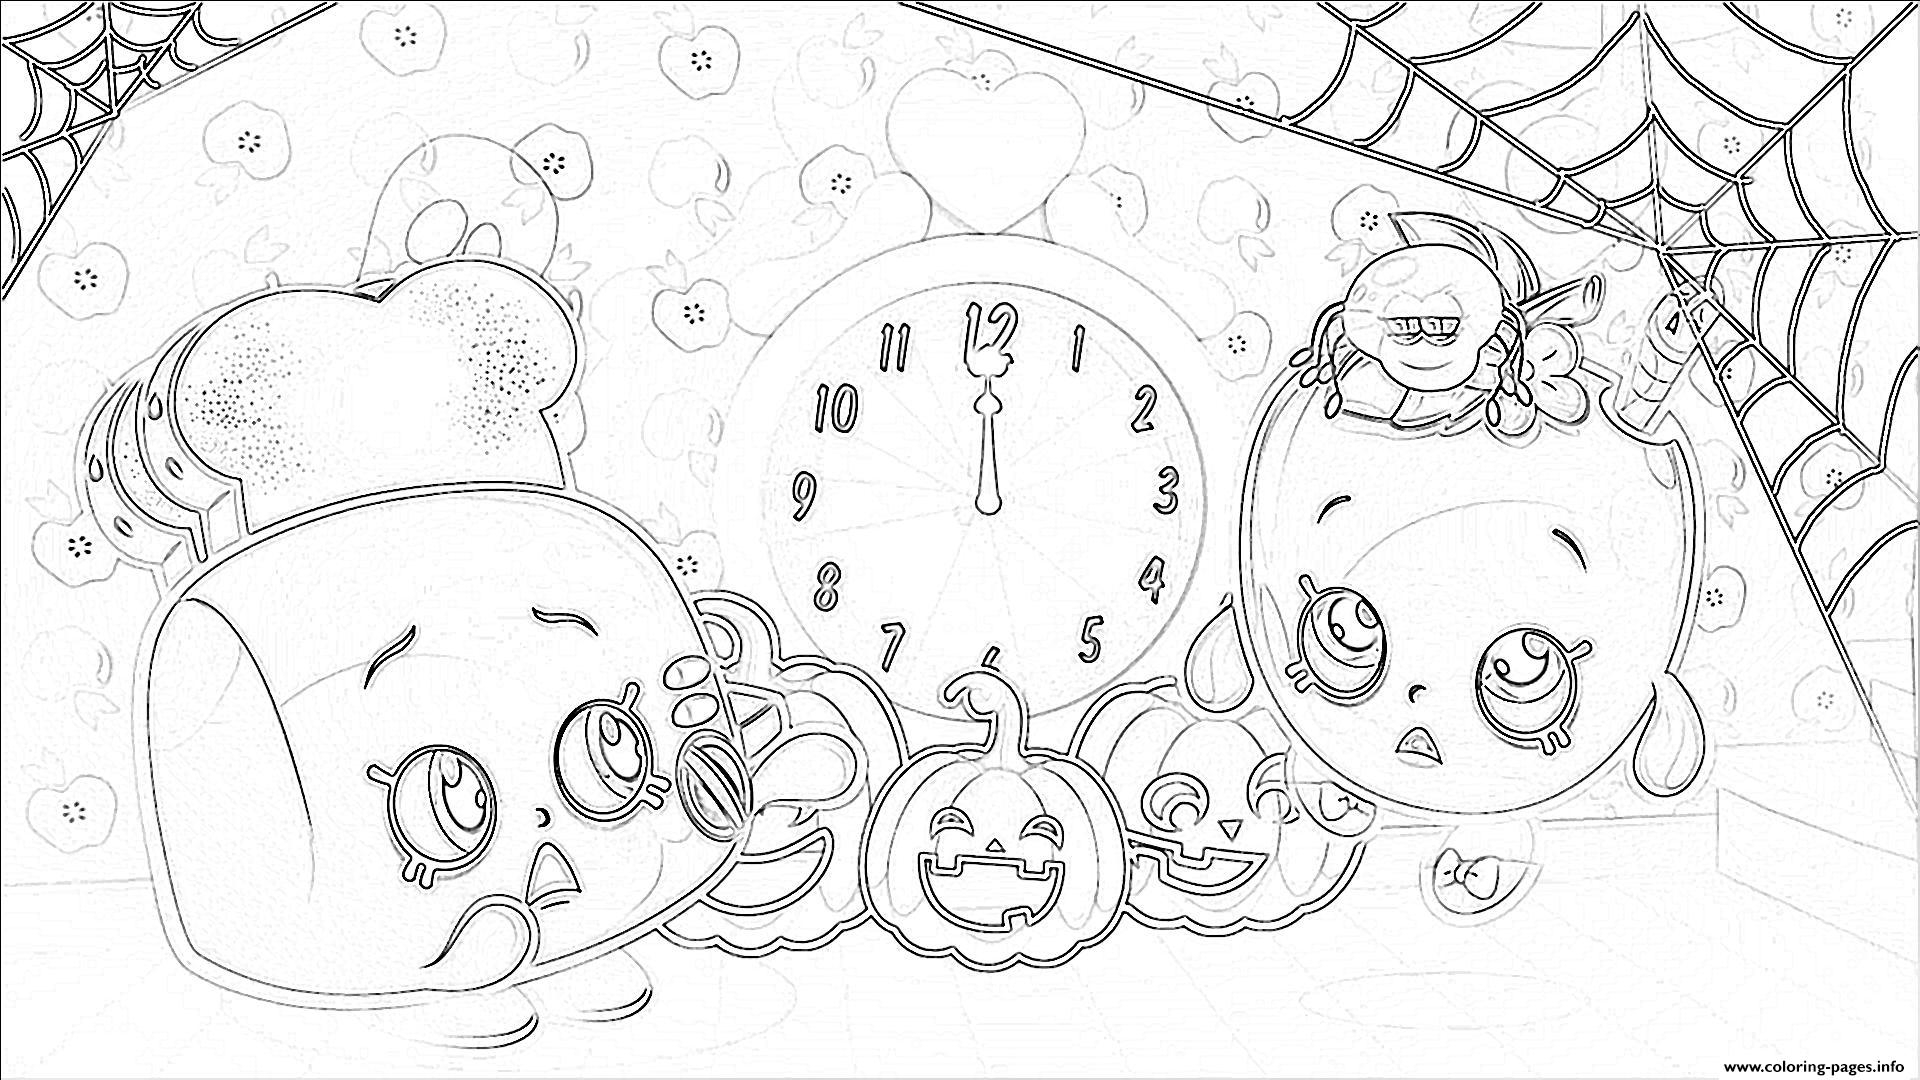 free minecraft coloring pages - shopkins halloween pumpkins printable coloring pages book